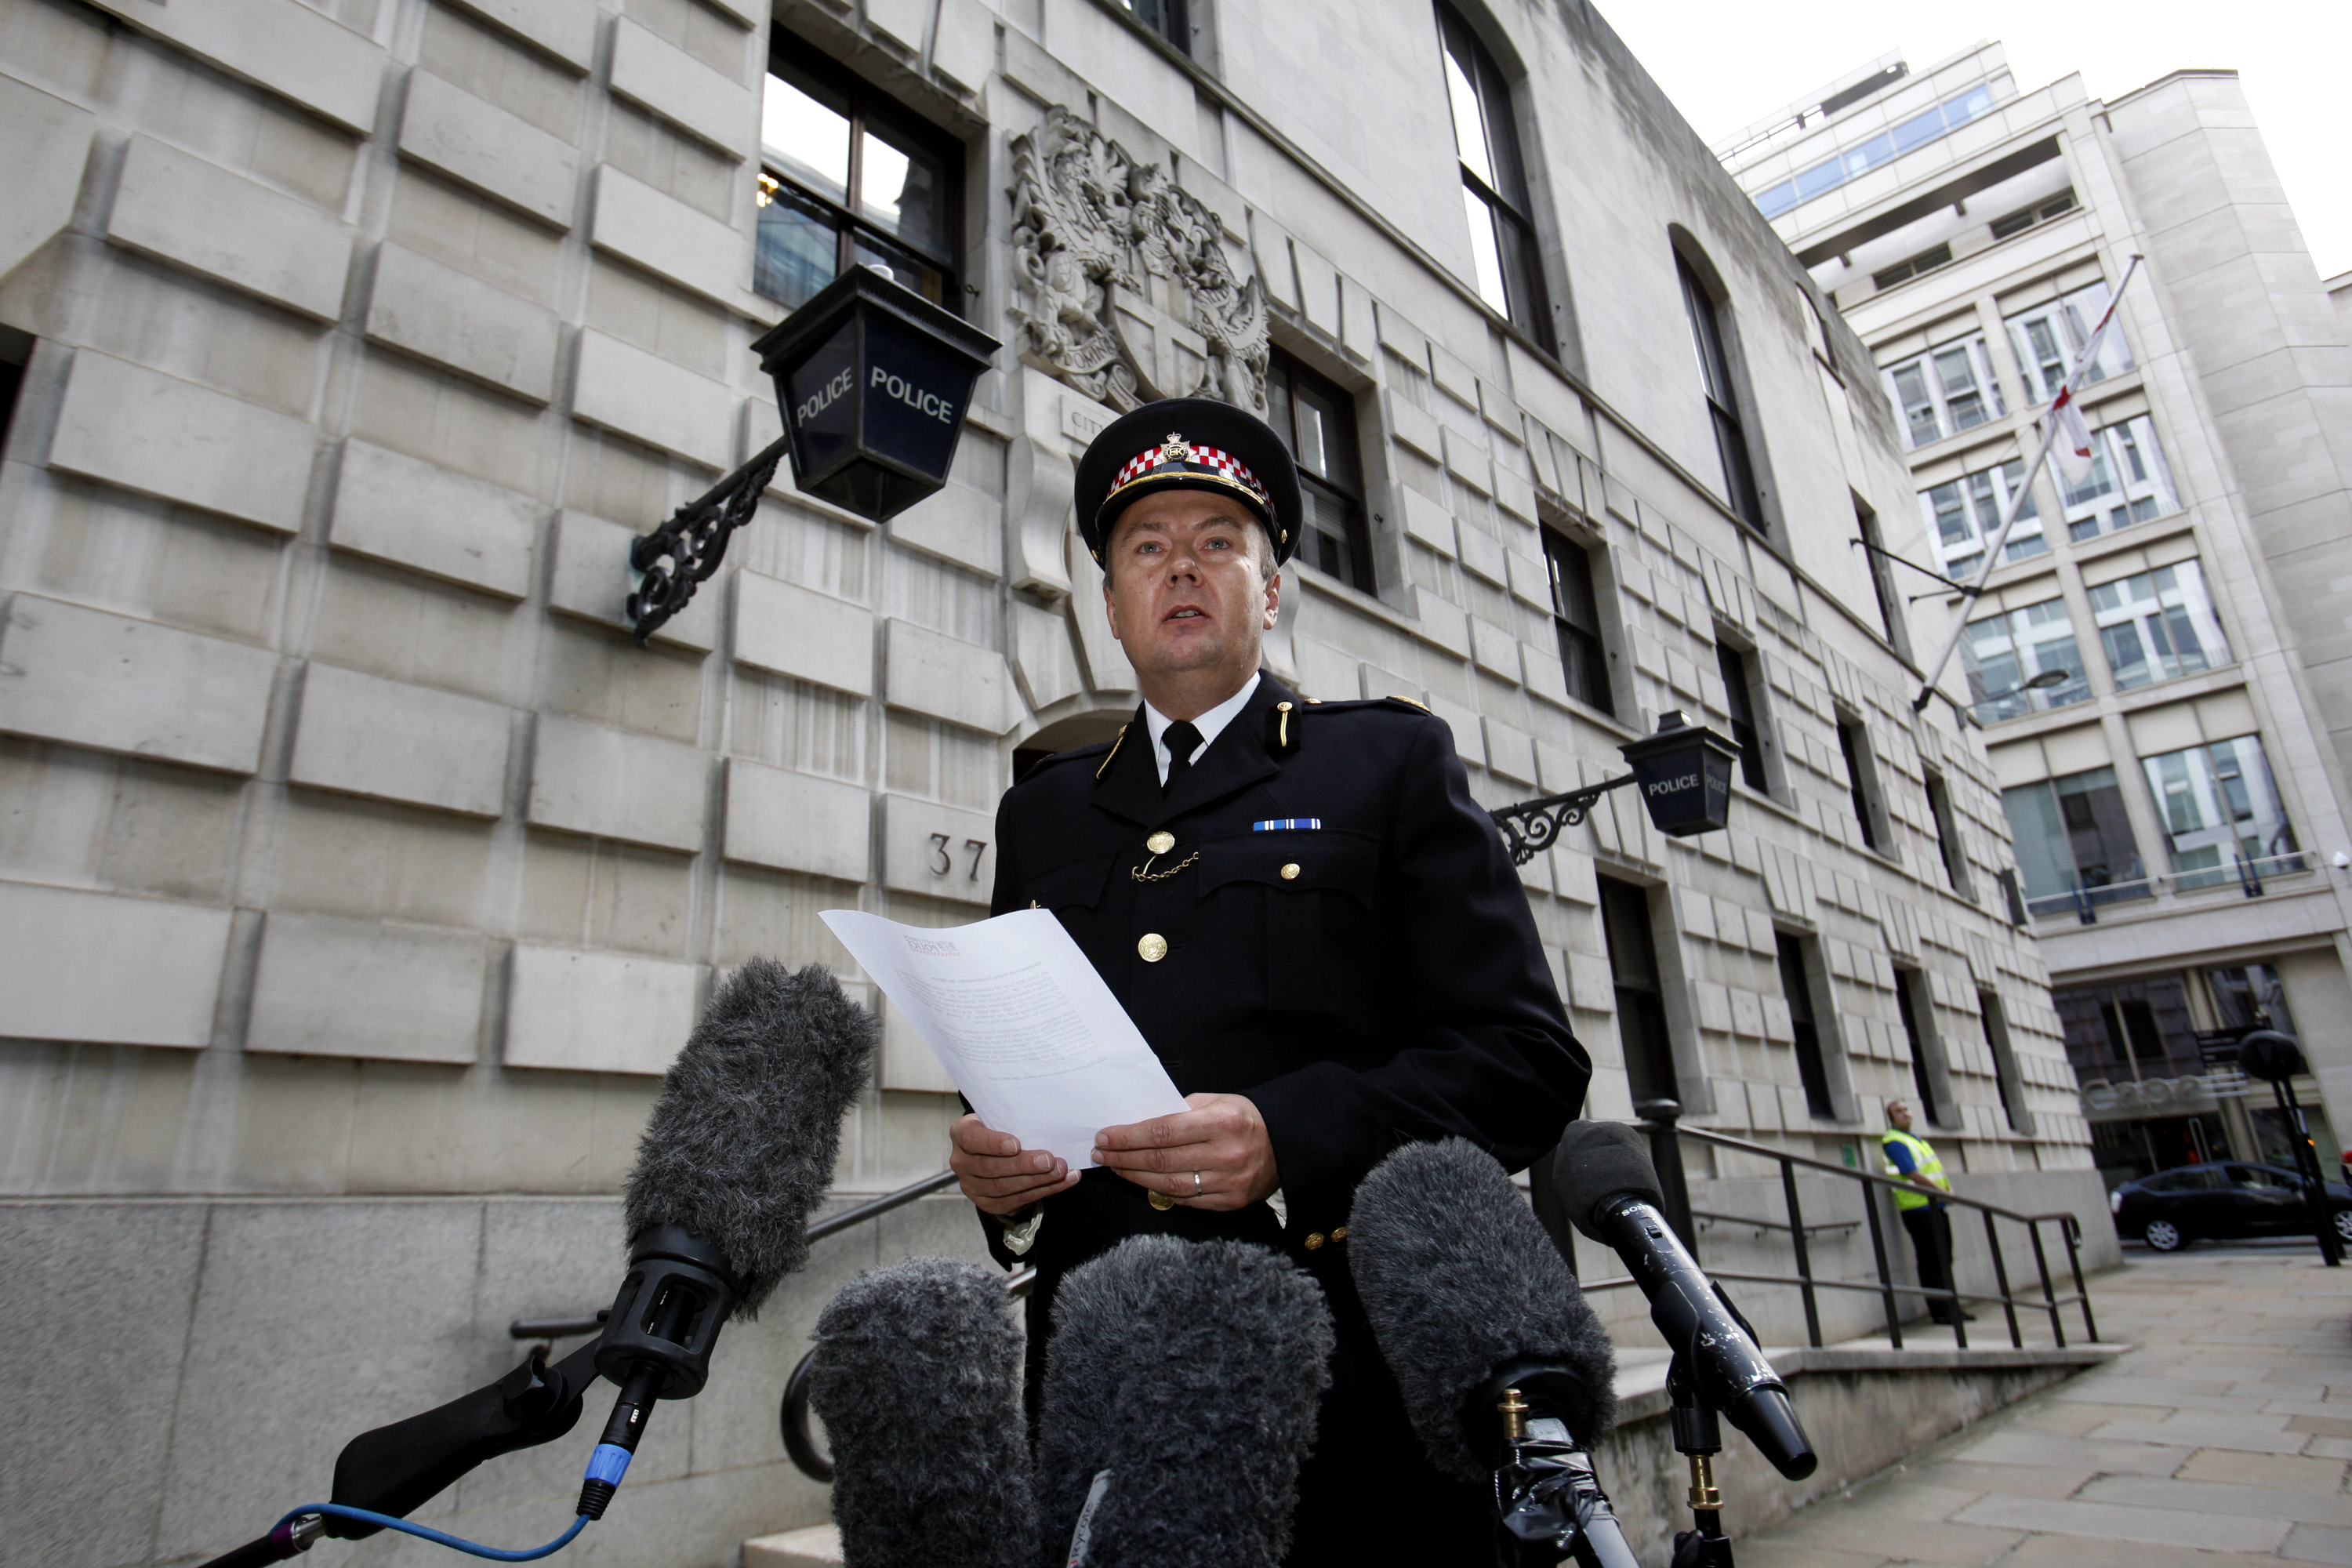 Commander Ian Dyson, of the City of London police, delivers a statement to the media outside Wood Street police station following the arrest of a UBS trader in London, U.K., on Thursday, Sept. 15, 2011. UBS AG, Switzerland's biggest bank, said it may be unprofitable in the third quarter after a $2 billion loss from unauthorized trading at its investment bank. Photographer: Simon Dawson/Bloomberg *** Local Caption *** Ian Dyson